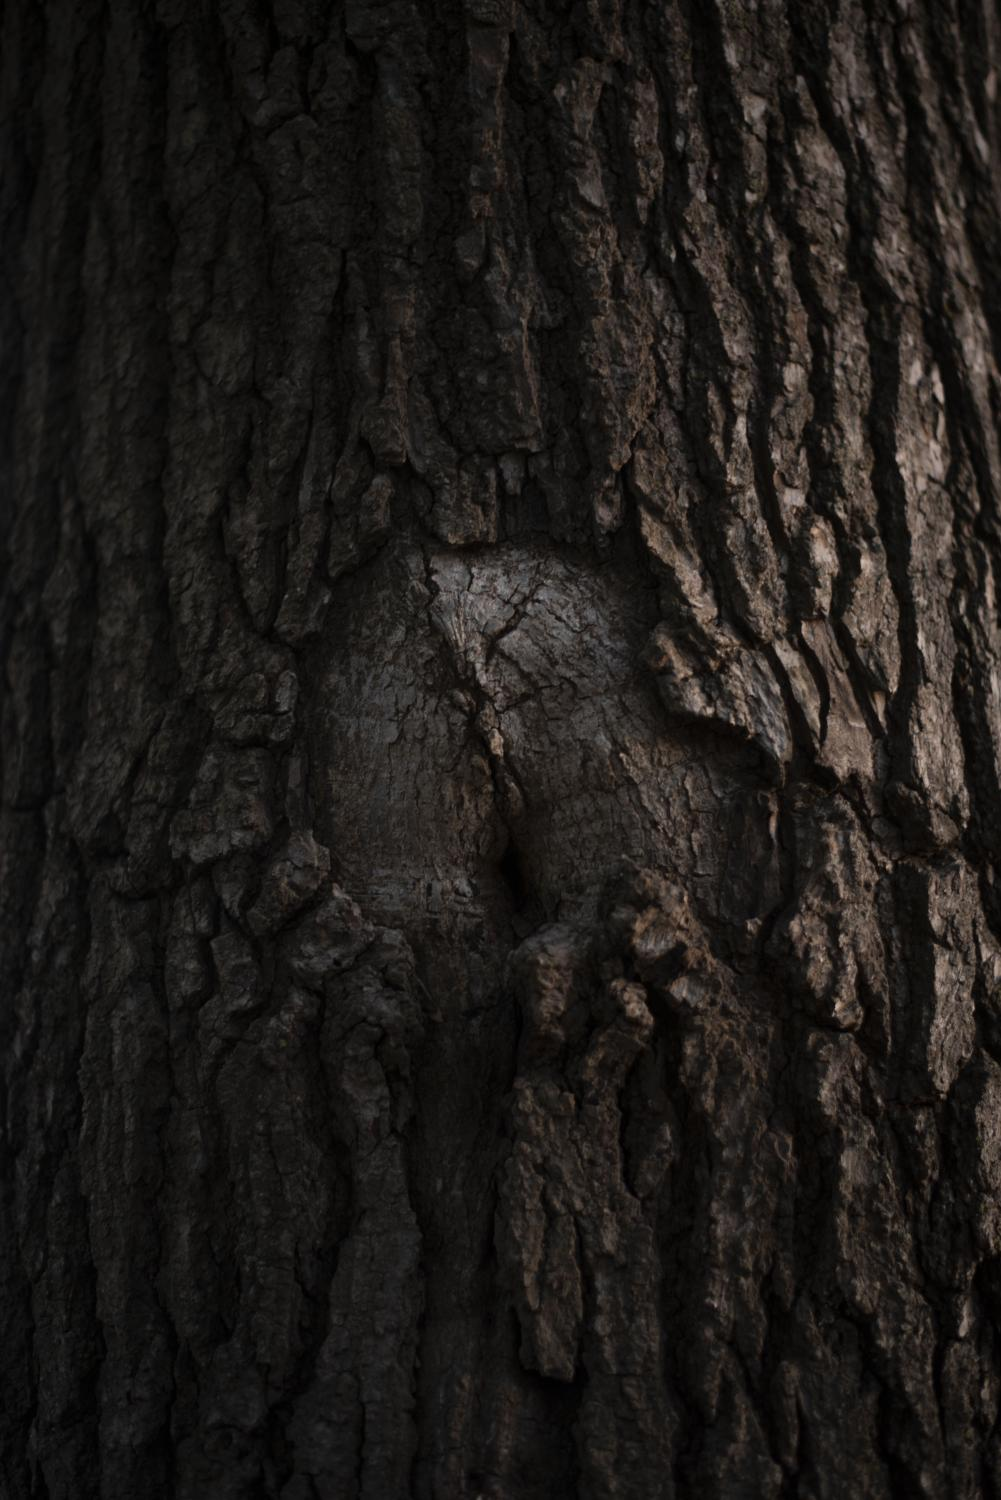 Bark grows around a gash in a tree trunk Oct. 12 on the University of Missouri campus in Columbia, Mo.